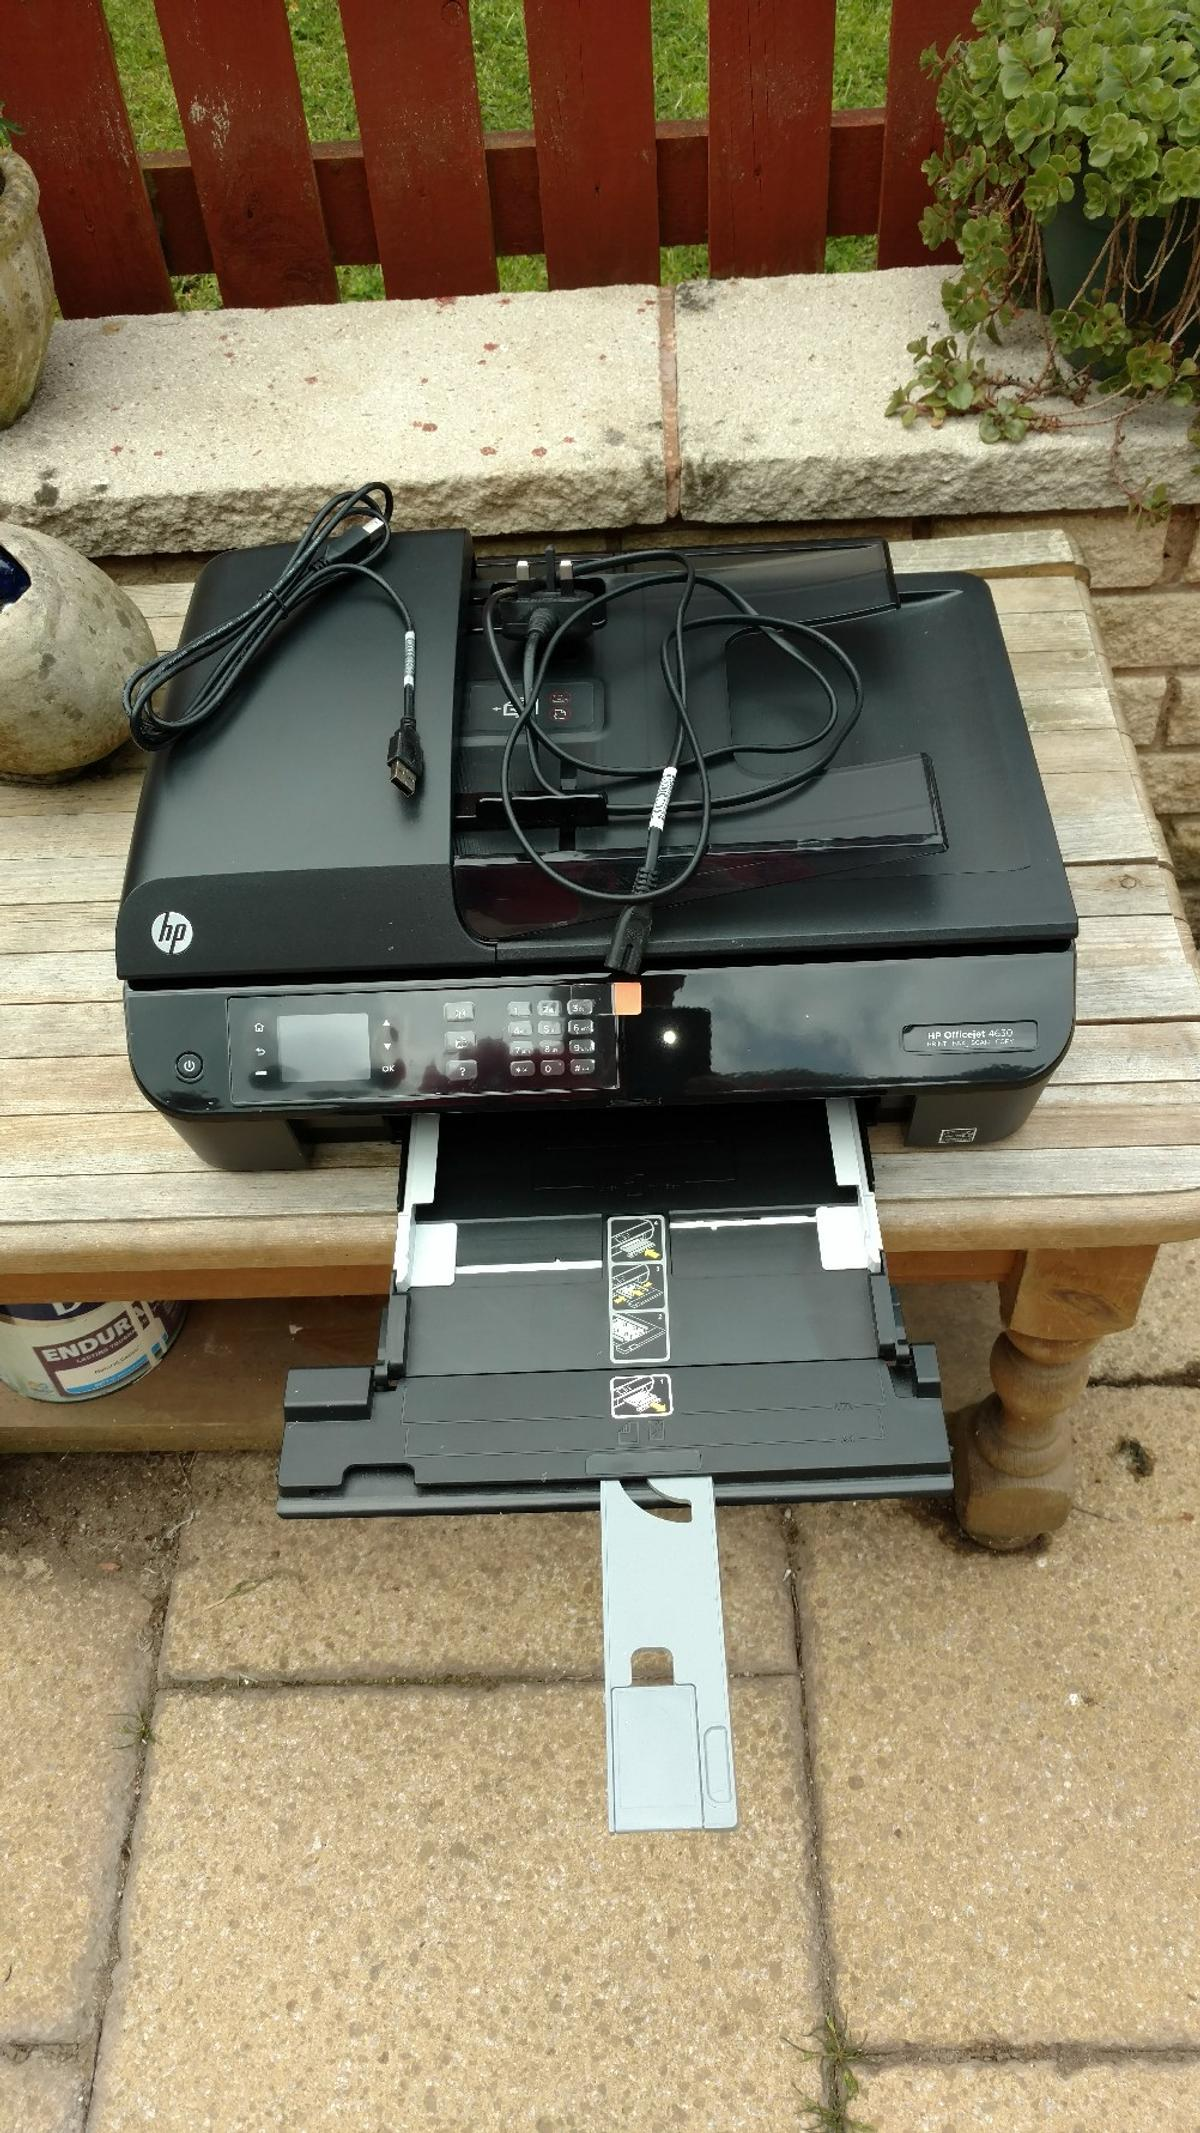 HP 4630 all in one printer